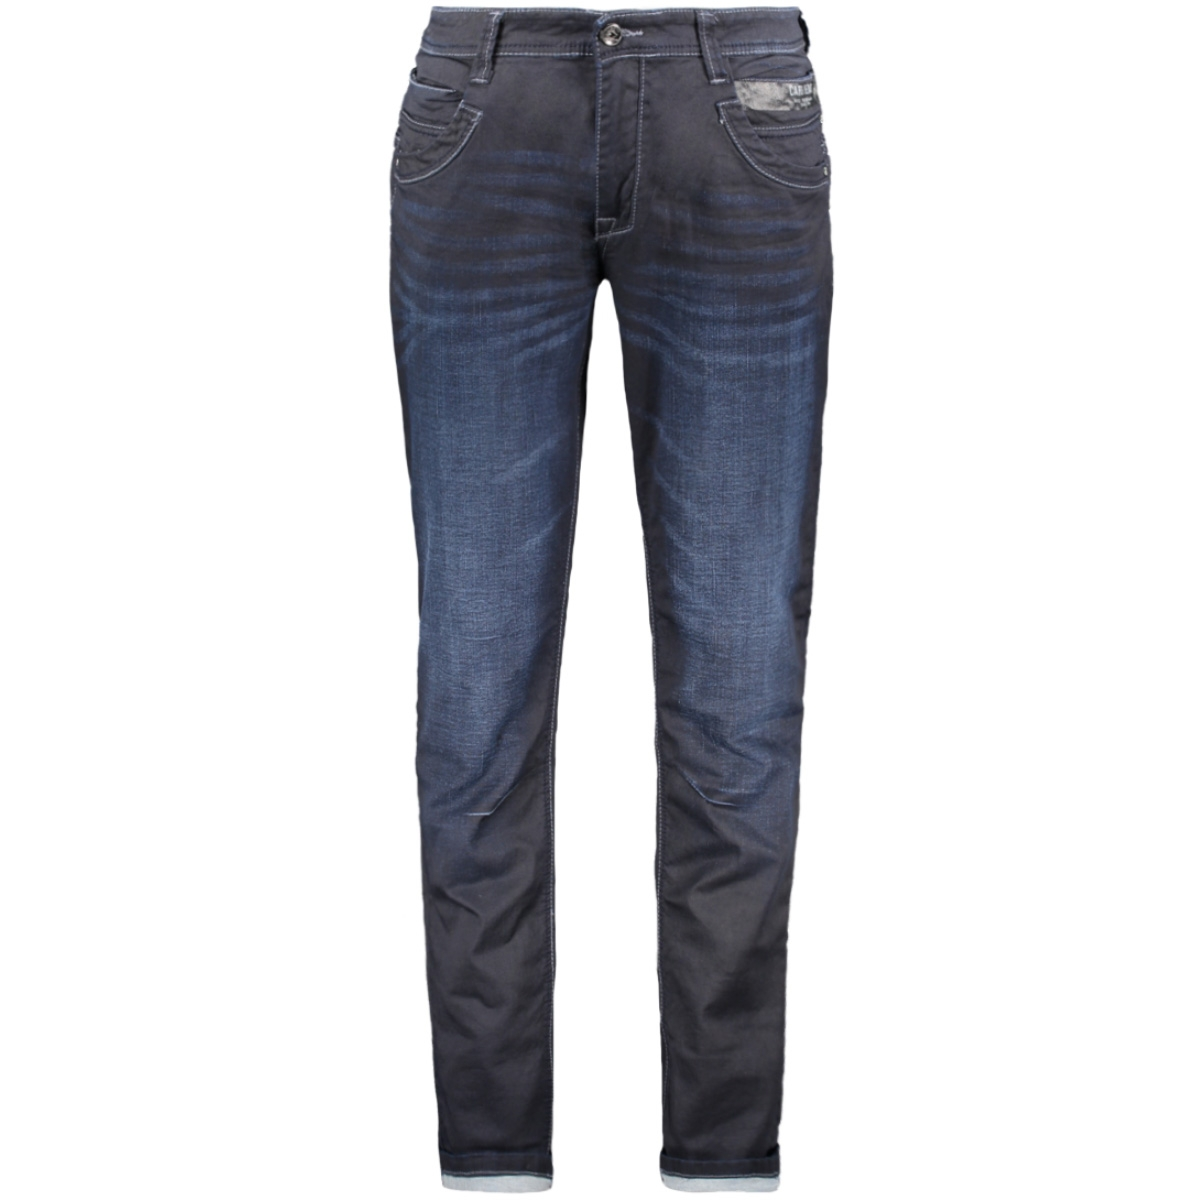 blackstar 74038 cars jeans 09 coated herlow was